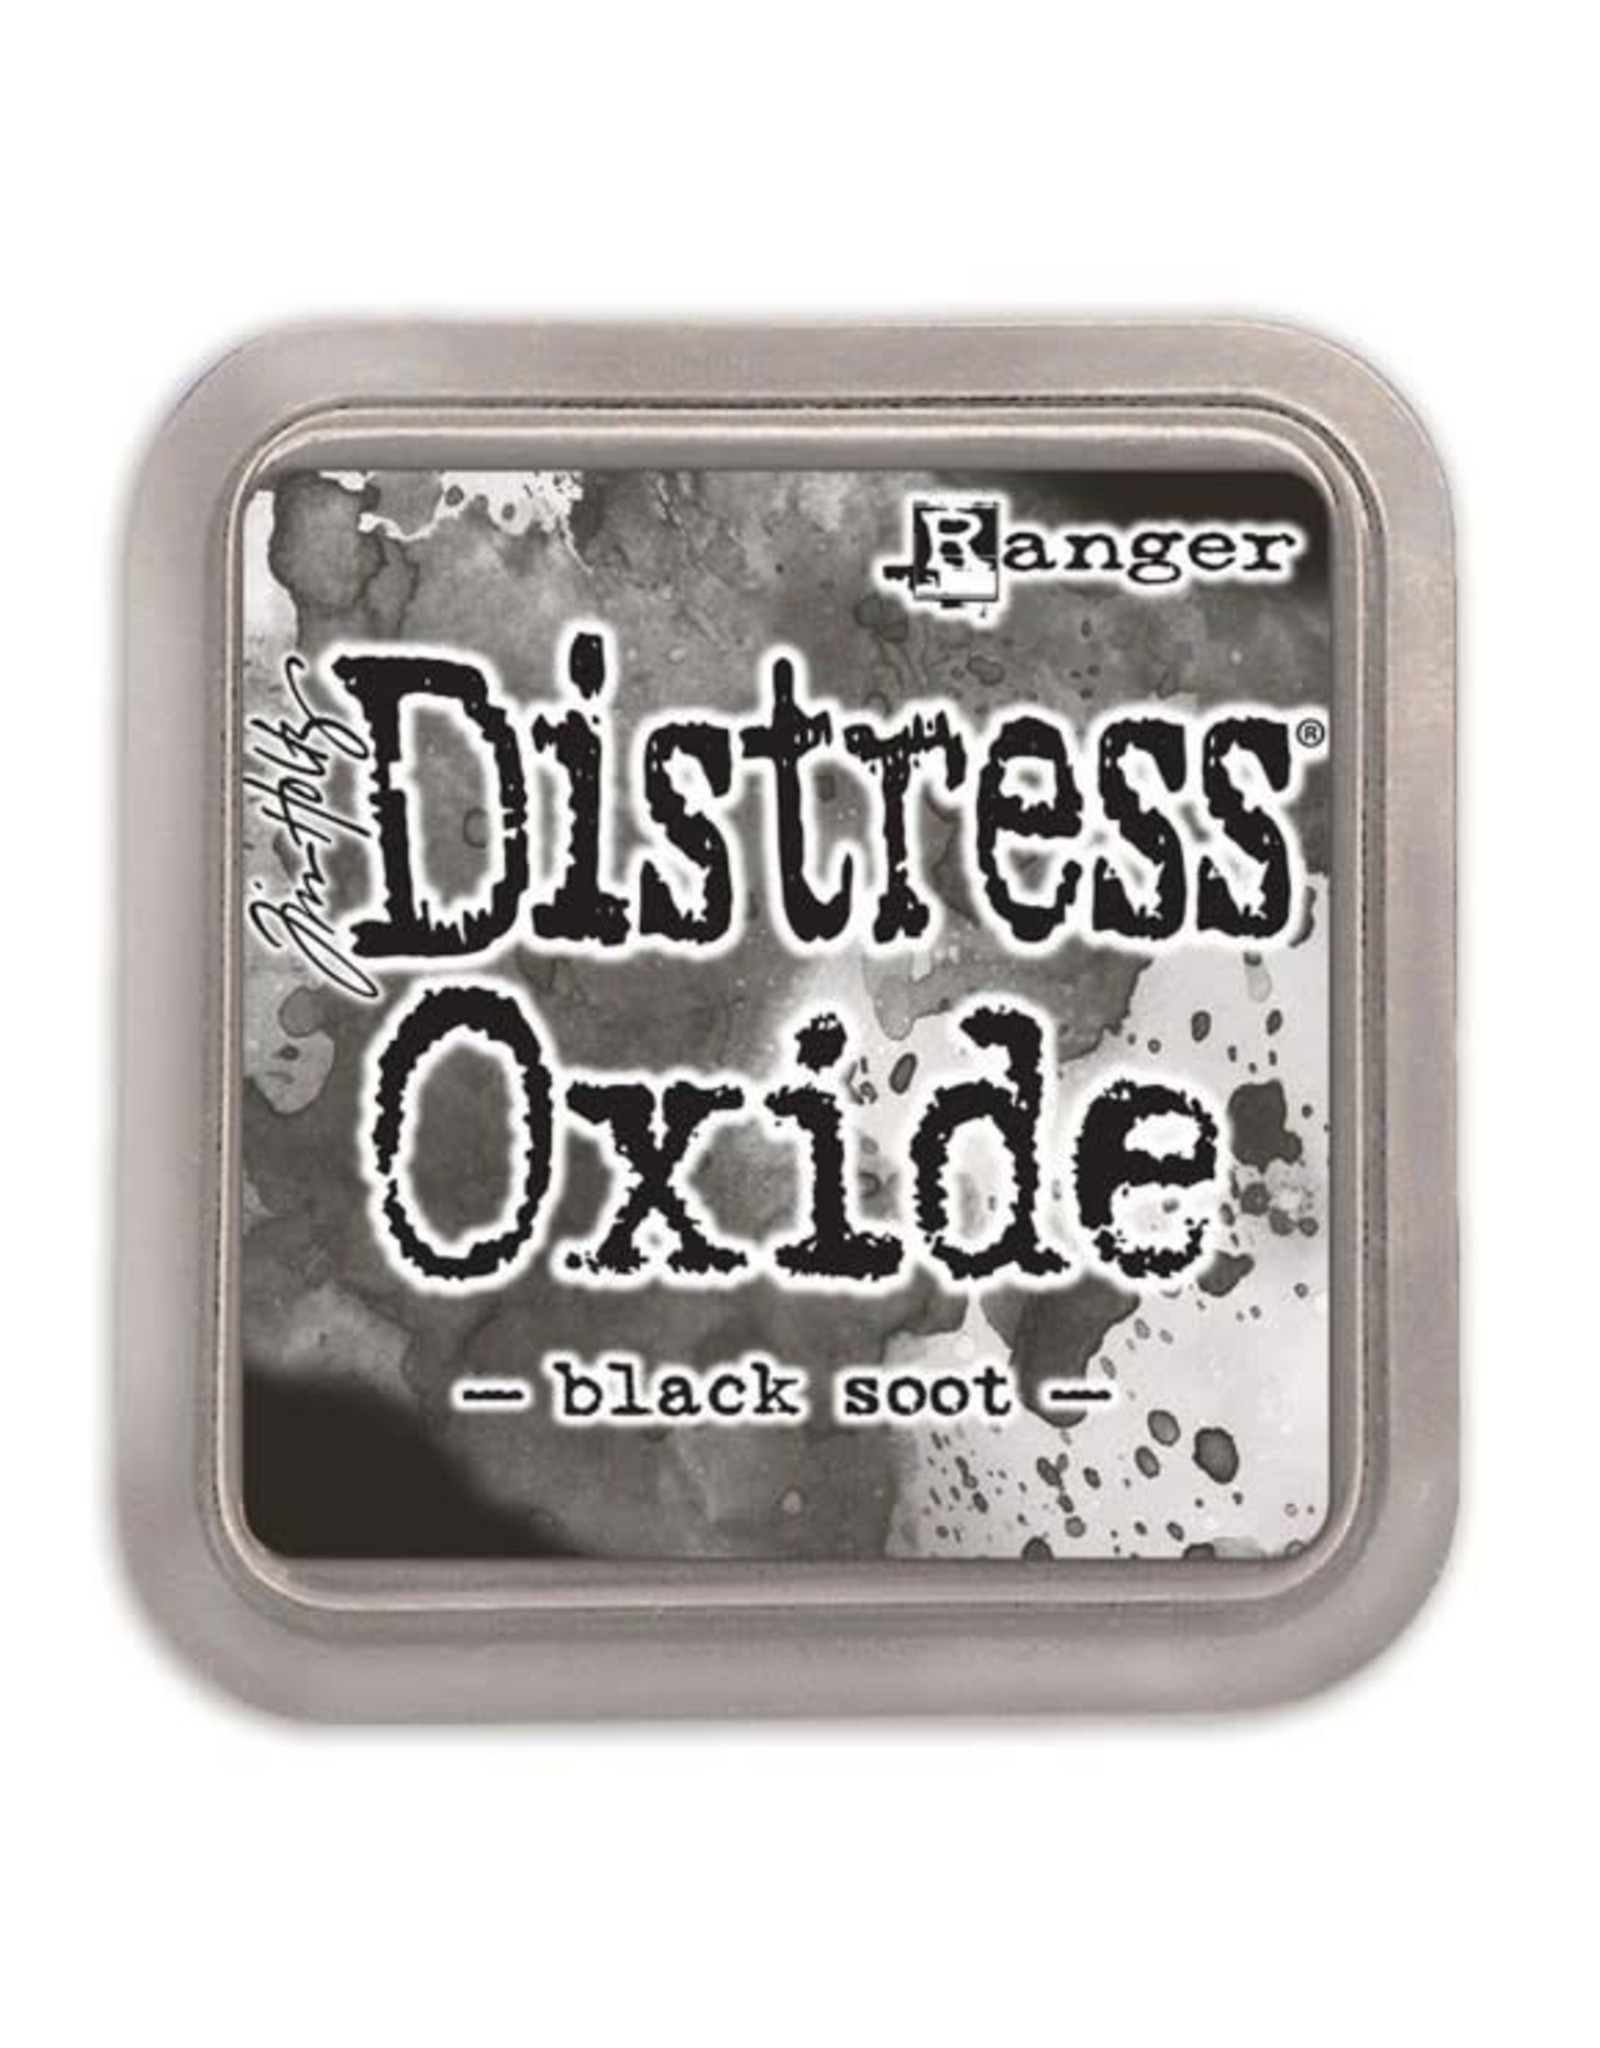 Ranger Distress Oxide Ranger Distress Oxide - black soot